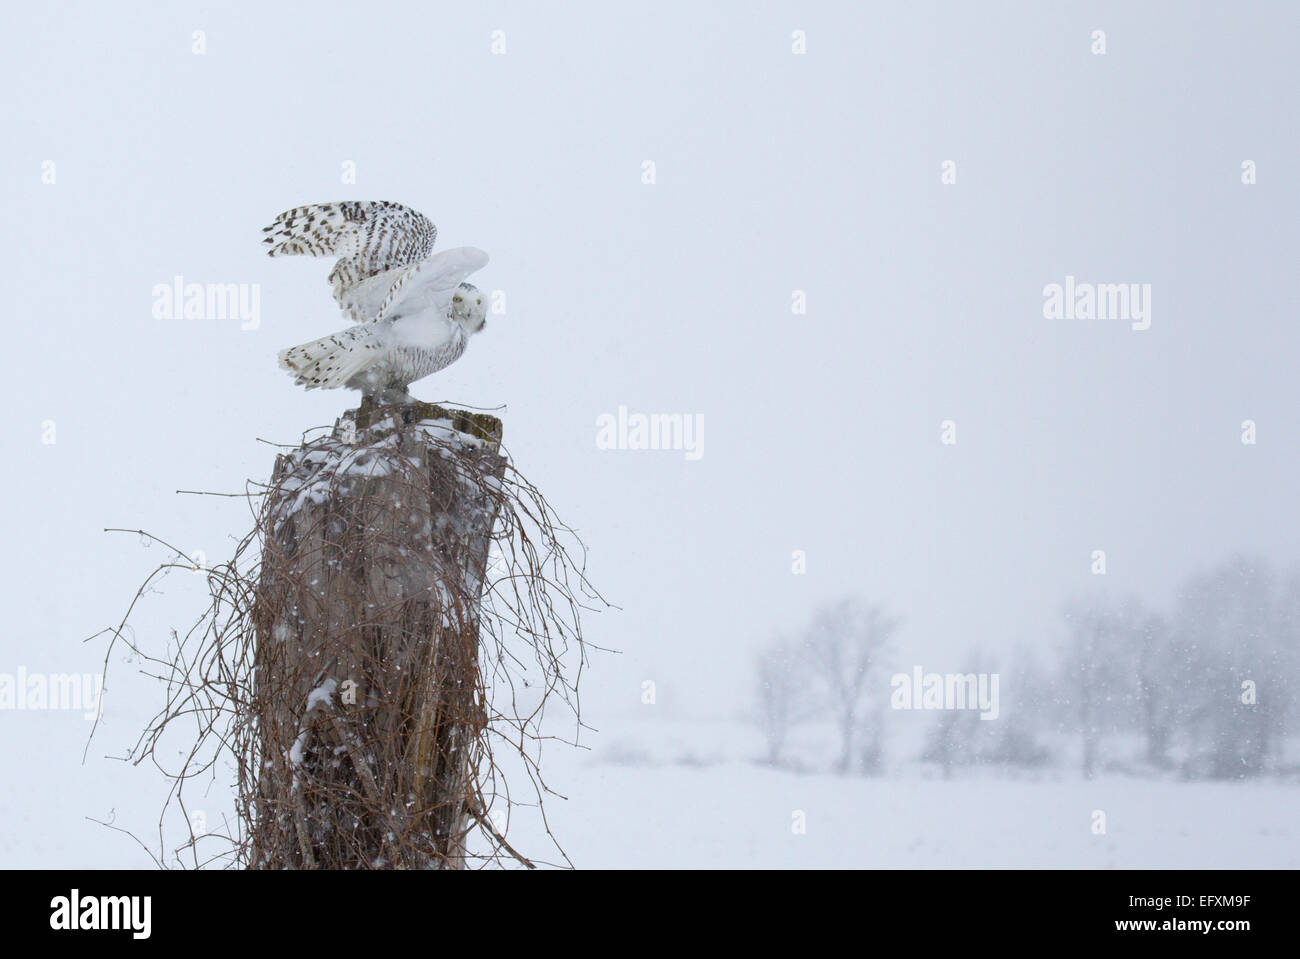 Snowy Owl Perched on Tree Stump - Stock Image